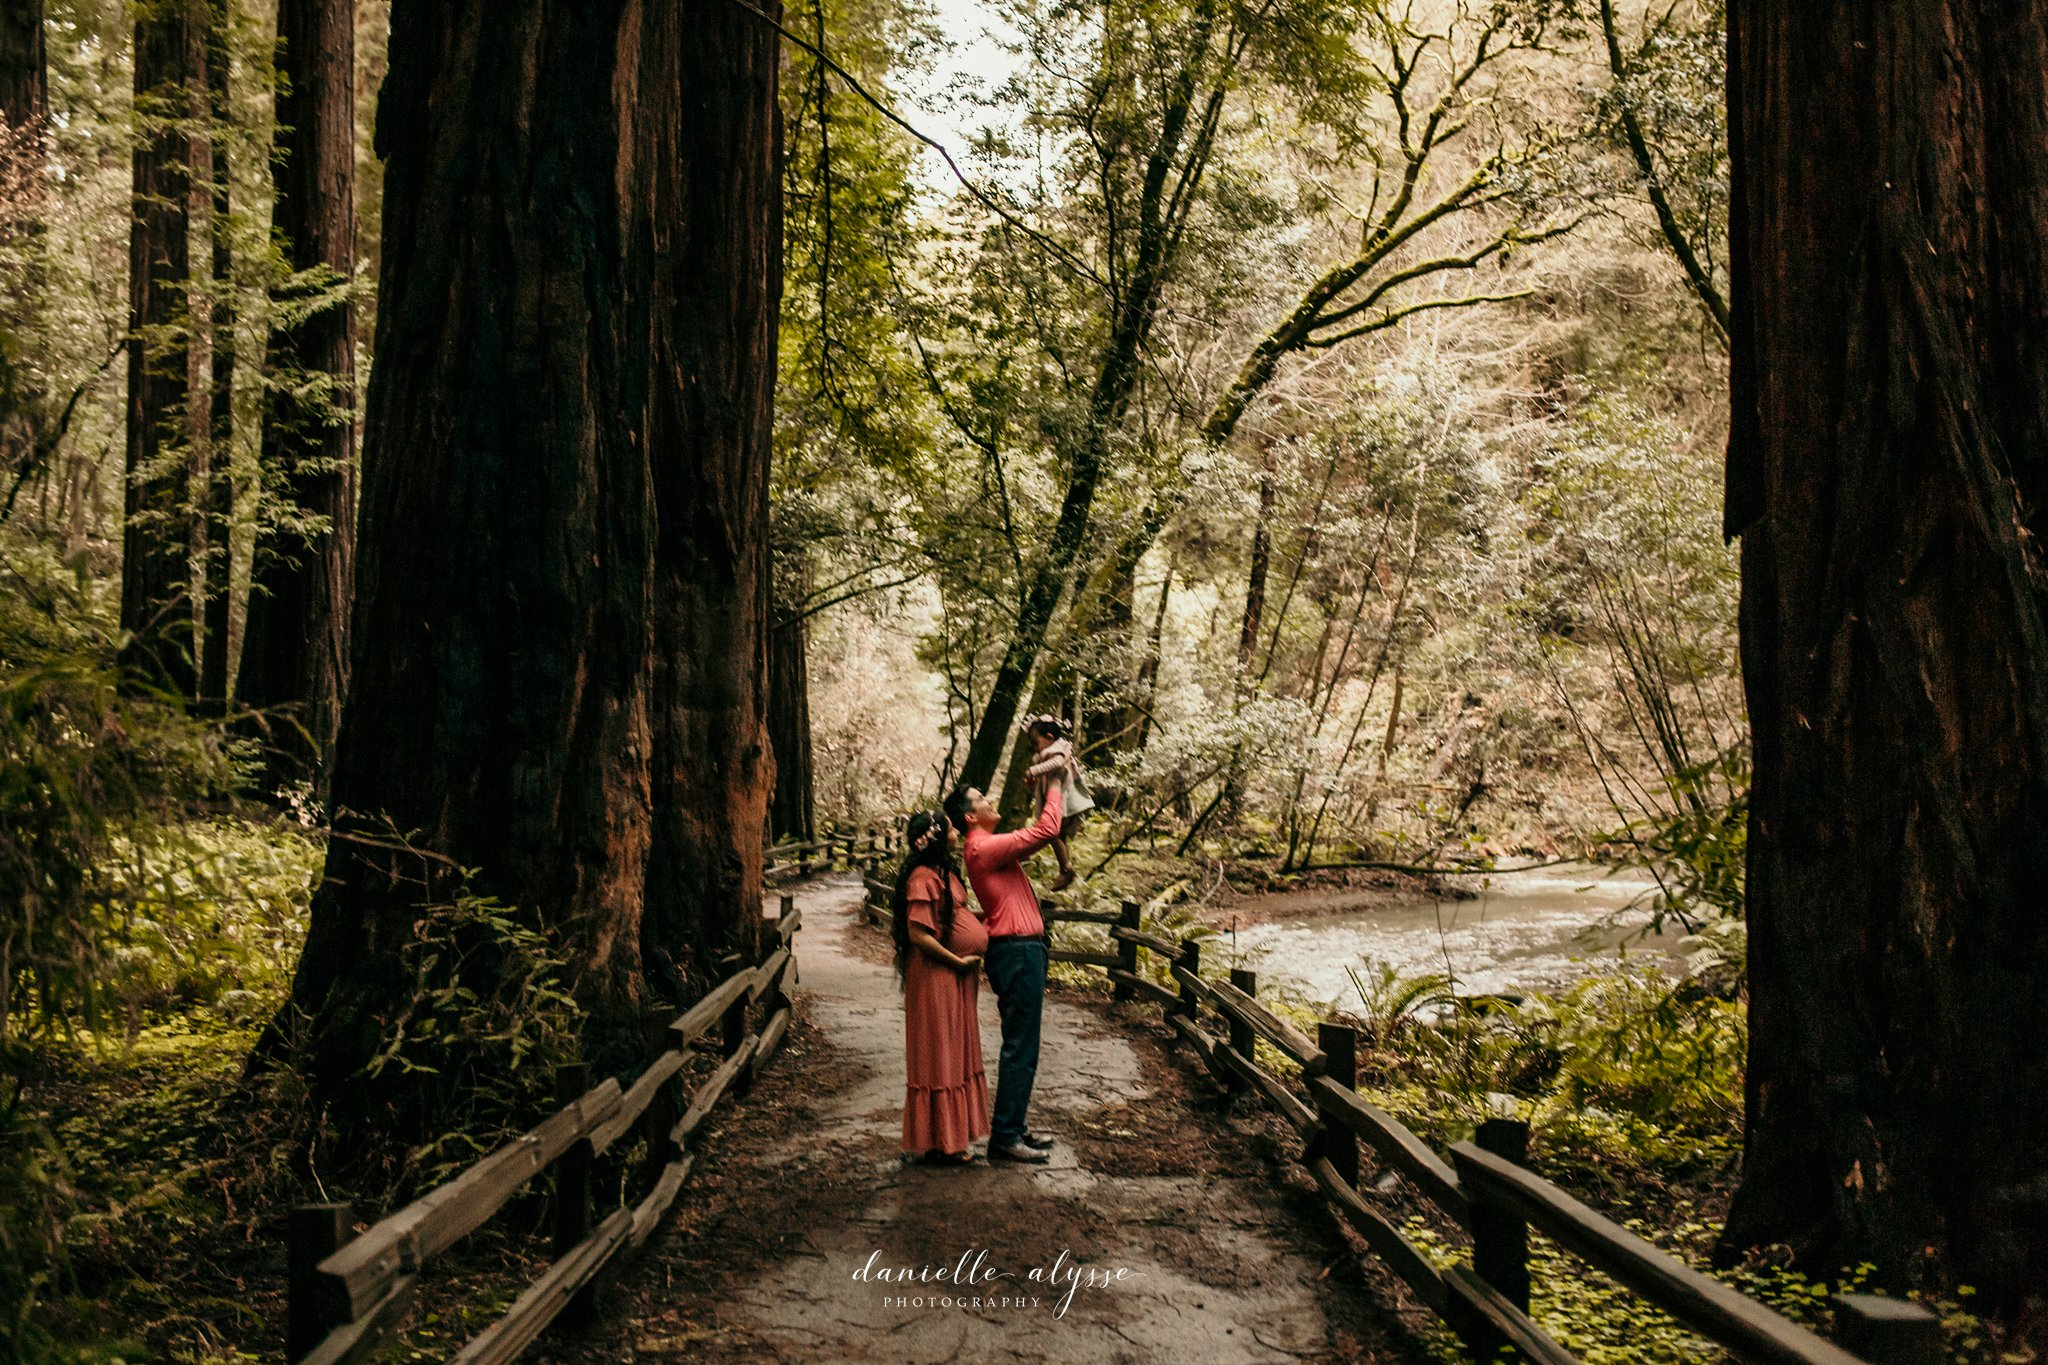 190216_maternity_india_family_muir_woods_bay_danielle_alysse_photography_34_WEB.jpg